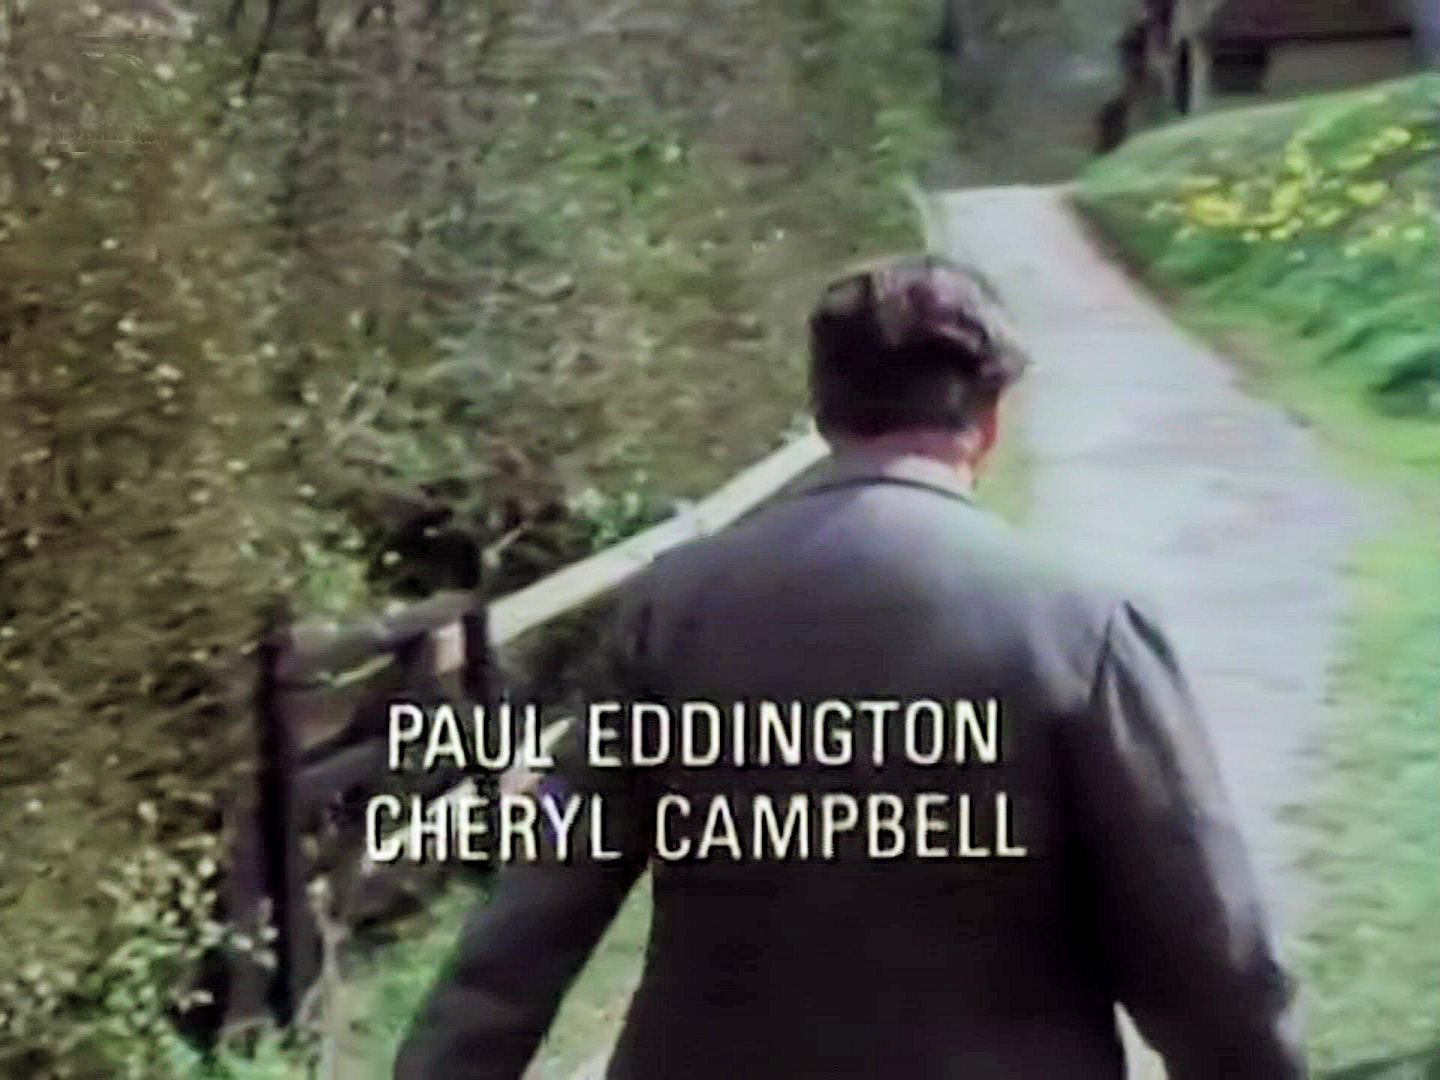 Main title from the 1986 'The Murder at the Vicarage' episode of Agatha Christie's Miss Marple (1984-1992) (5). Paul Eddington, Cheryl Campbell